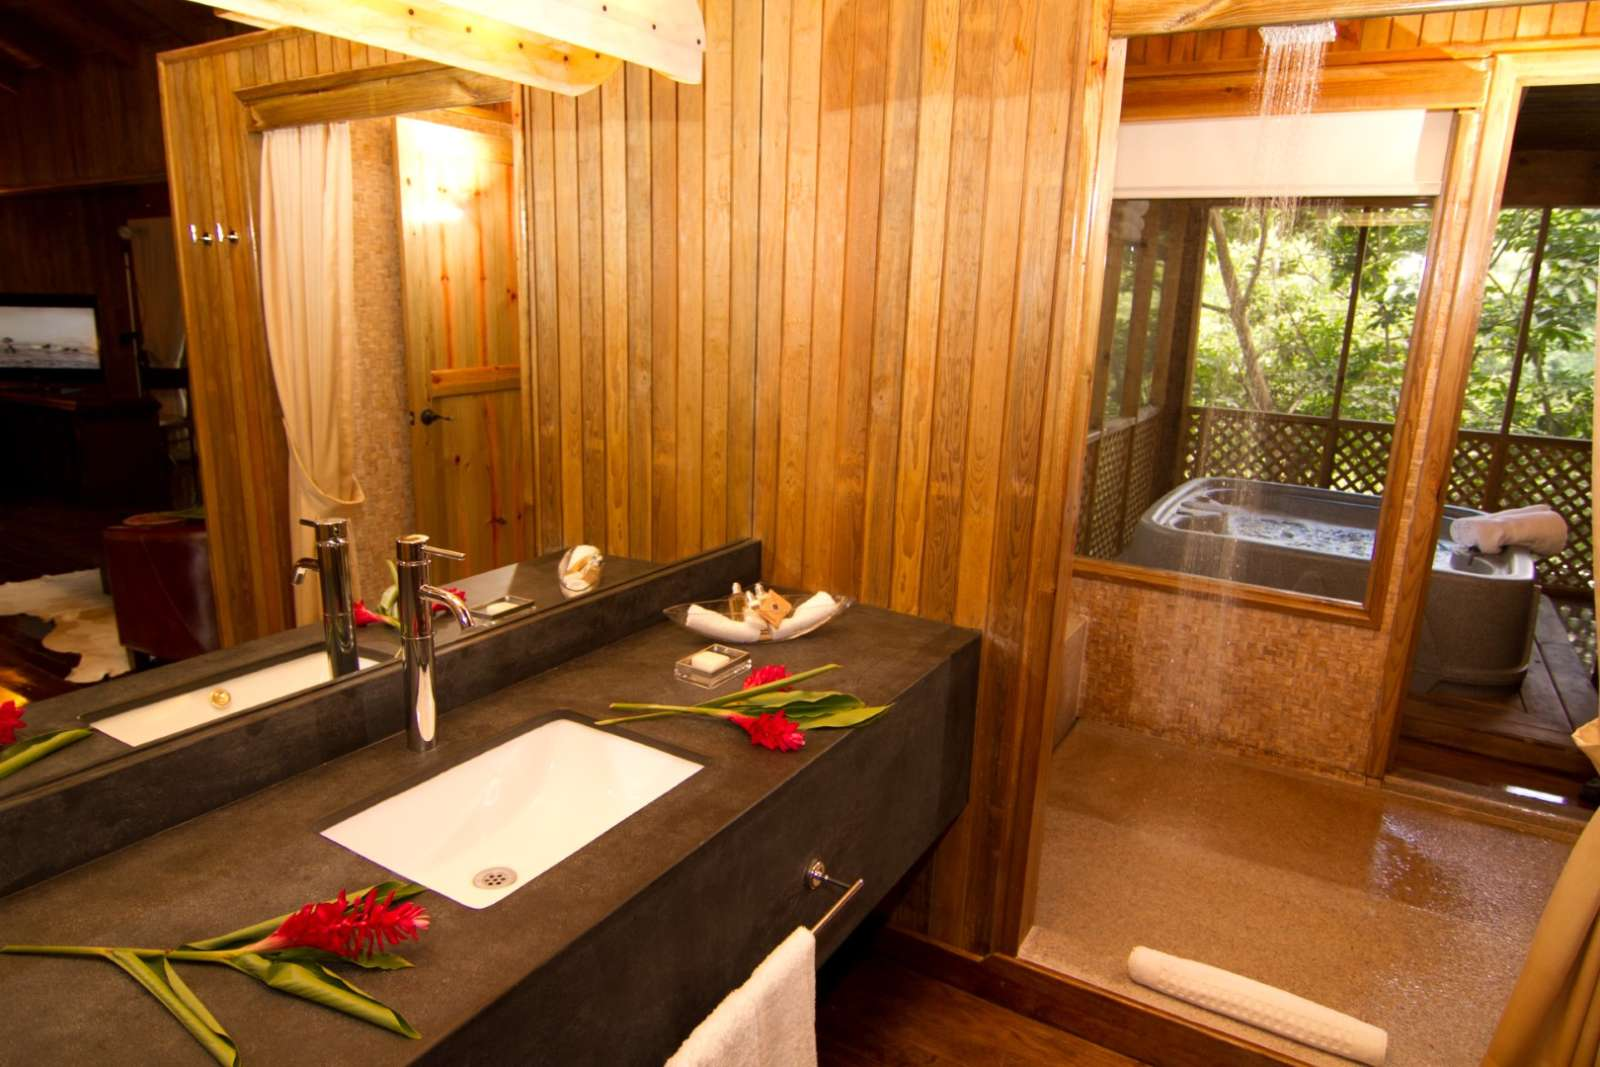 Bathroom and hot tub at Hotel Las Lagunas, Guatemala